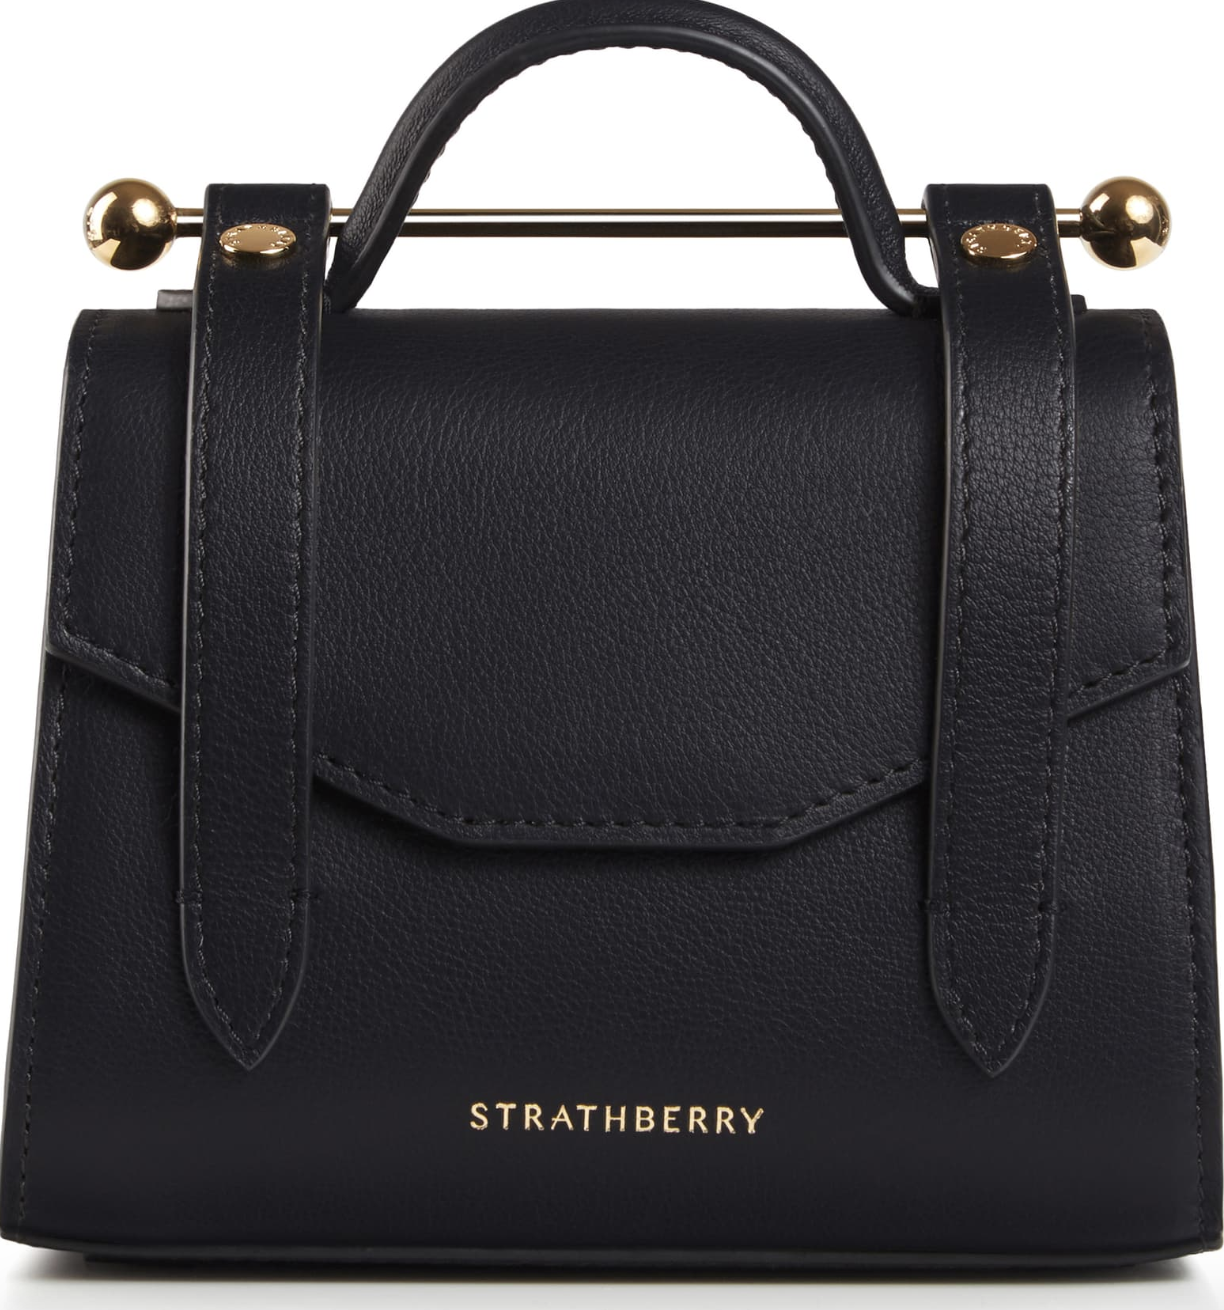 the black leather tote